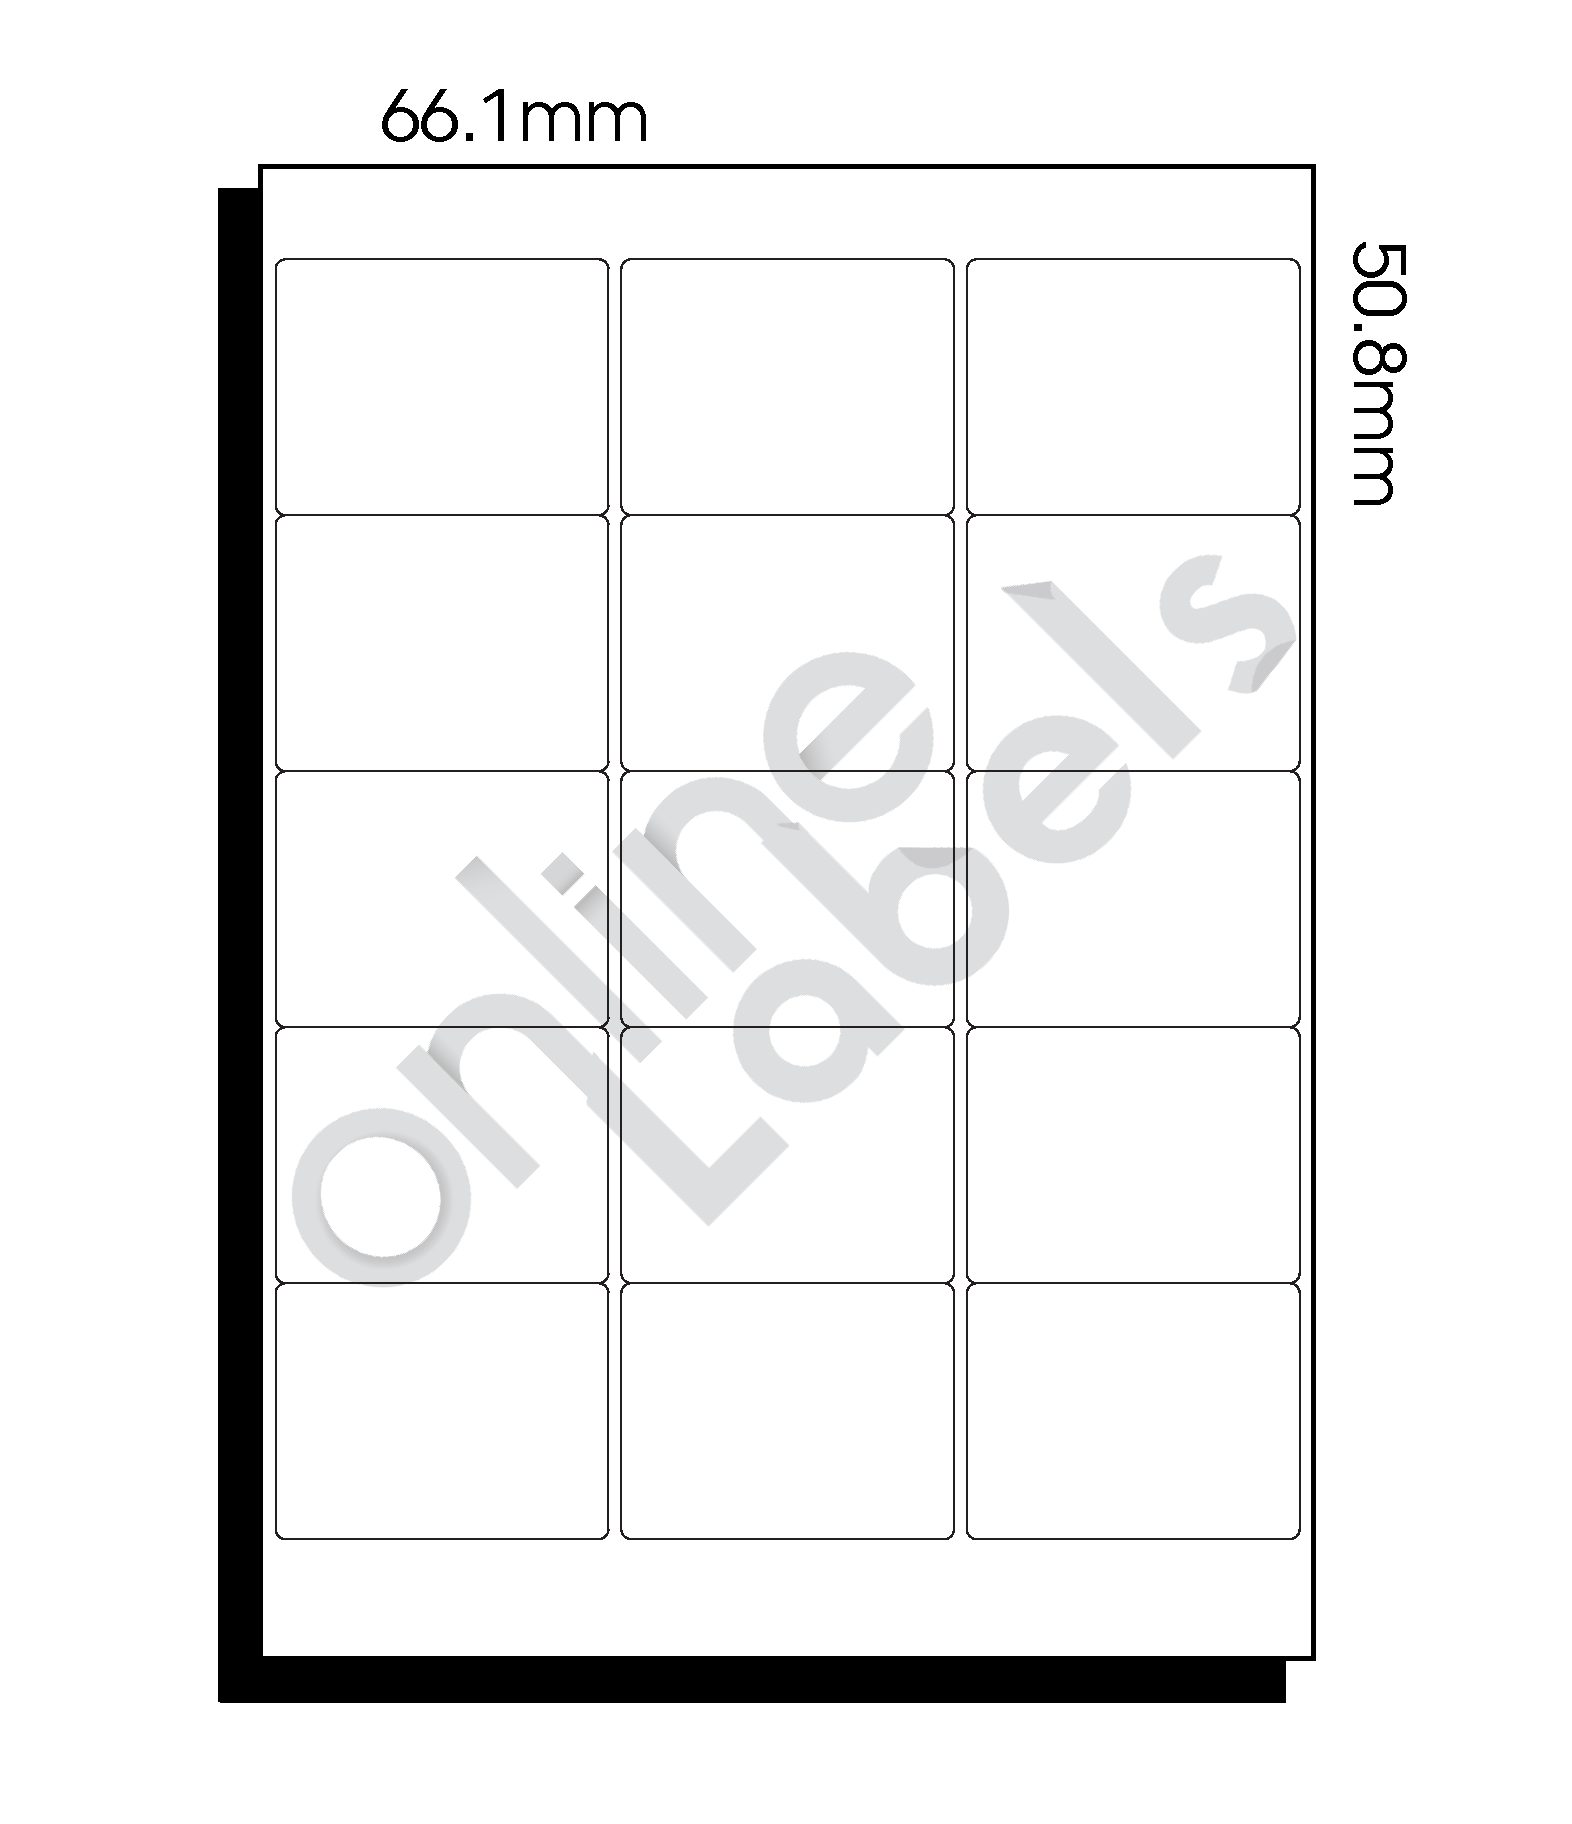 66.1mm x 50.8mm Floppy Disk Labels – 15 Labels per Sheet